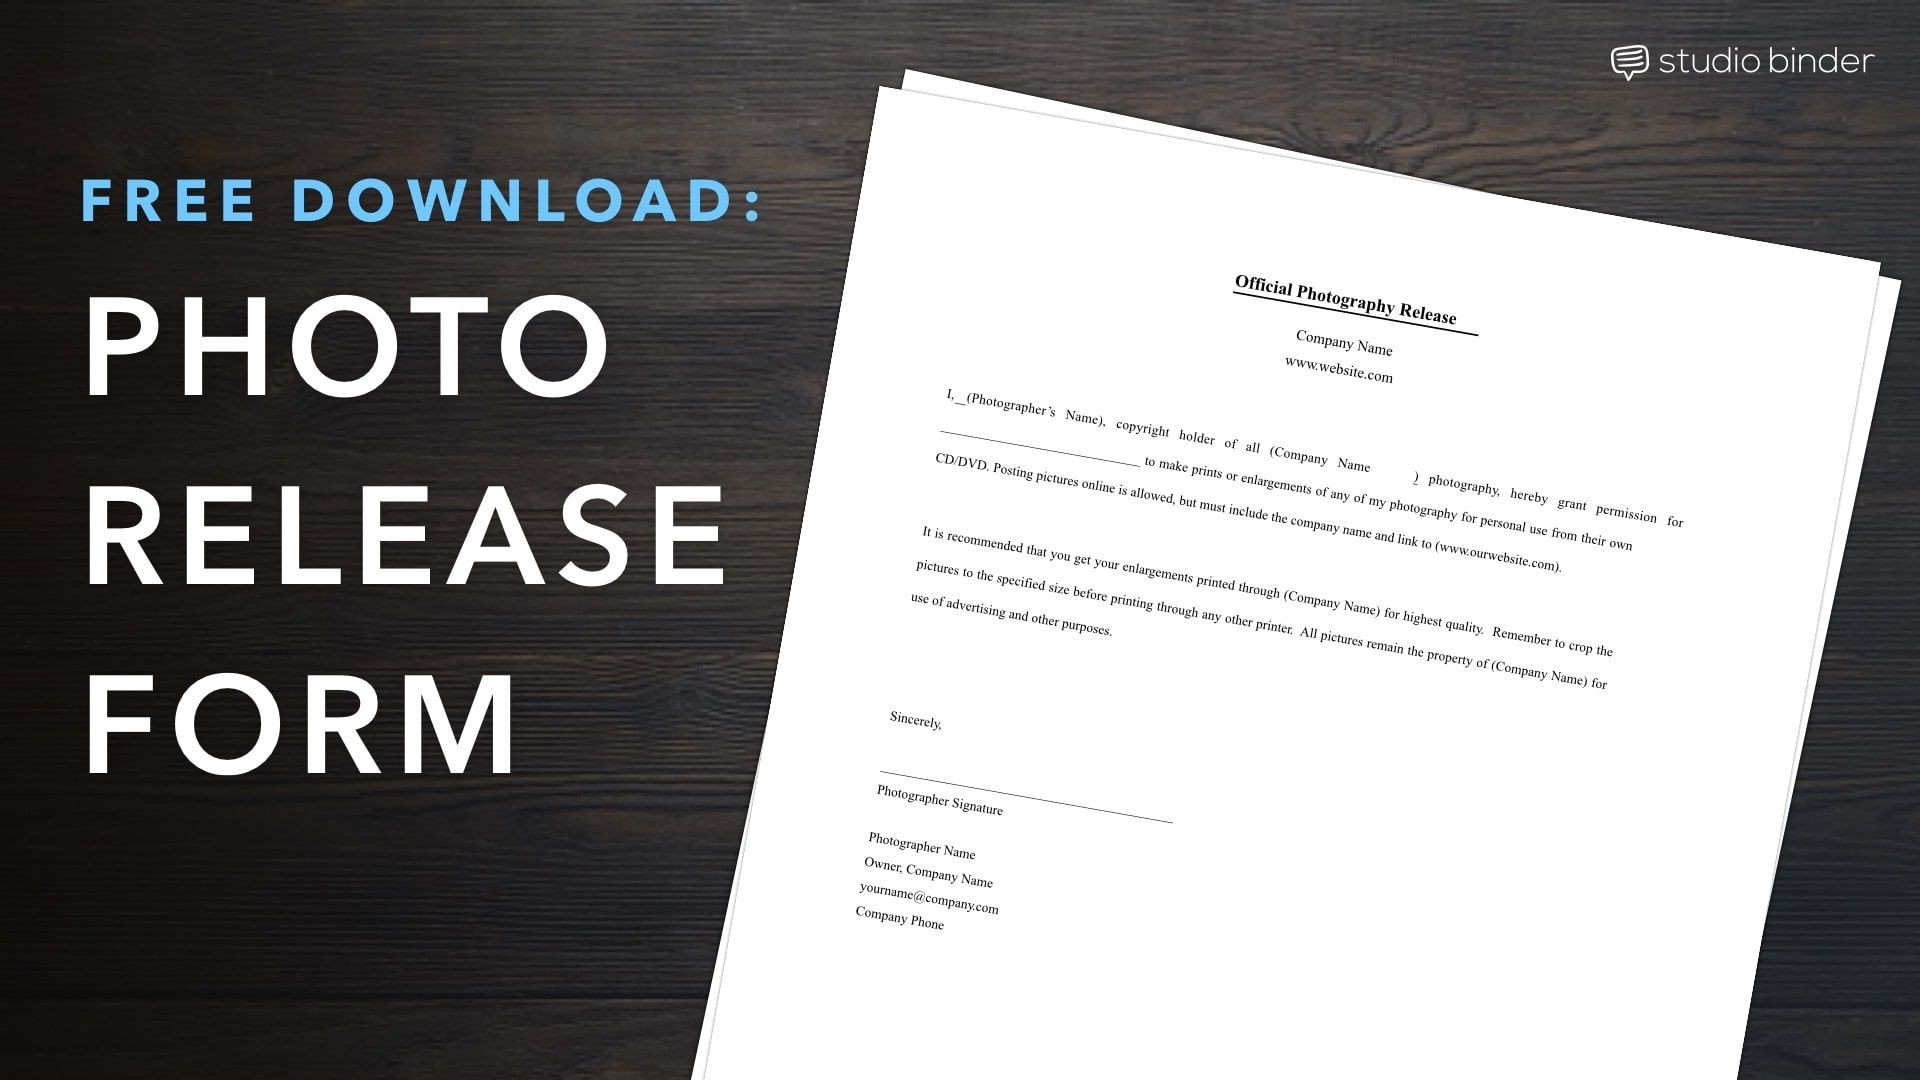 003 Best Photo Release Form Template Free Image  Print Order And Video Canada1920